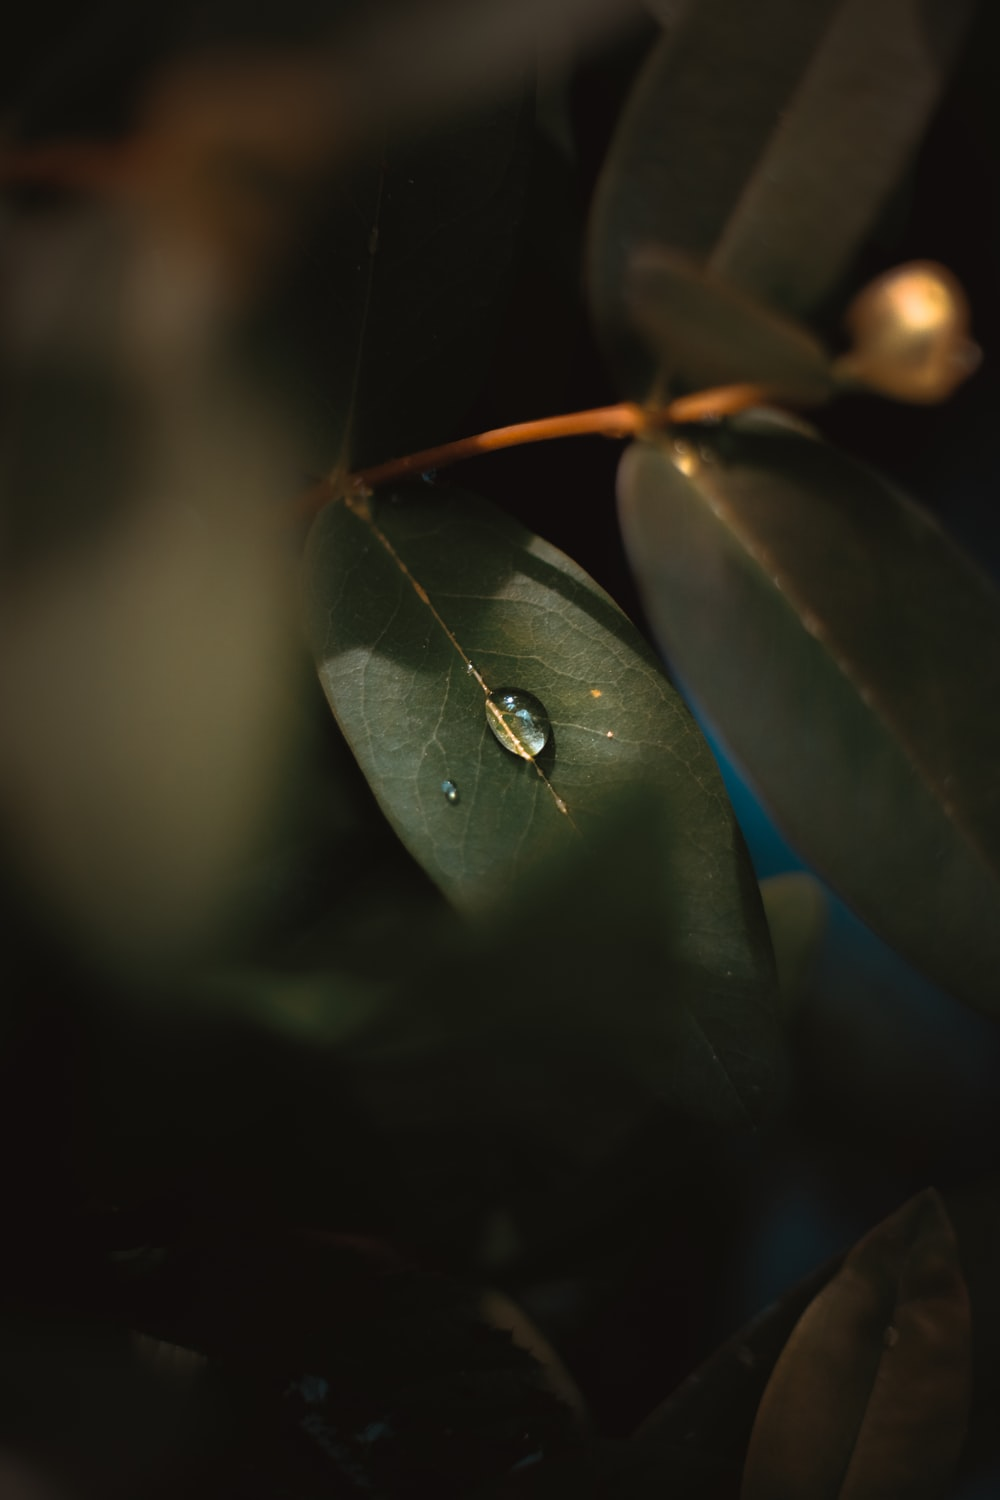 water droplet on green plant